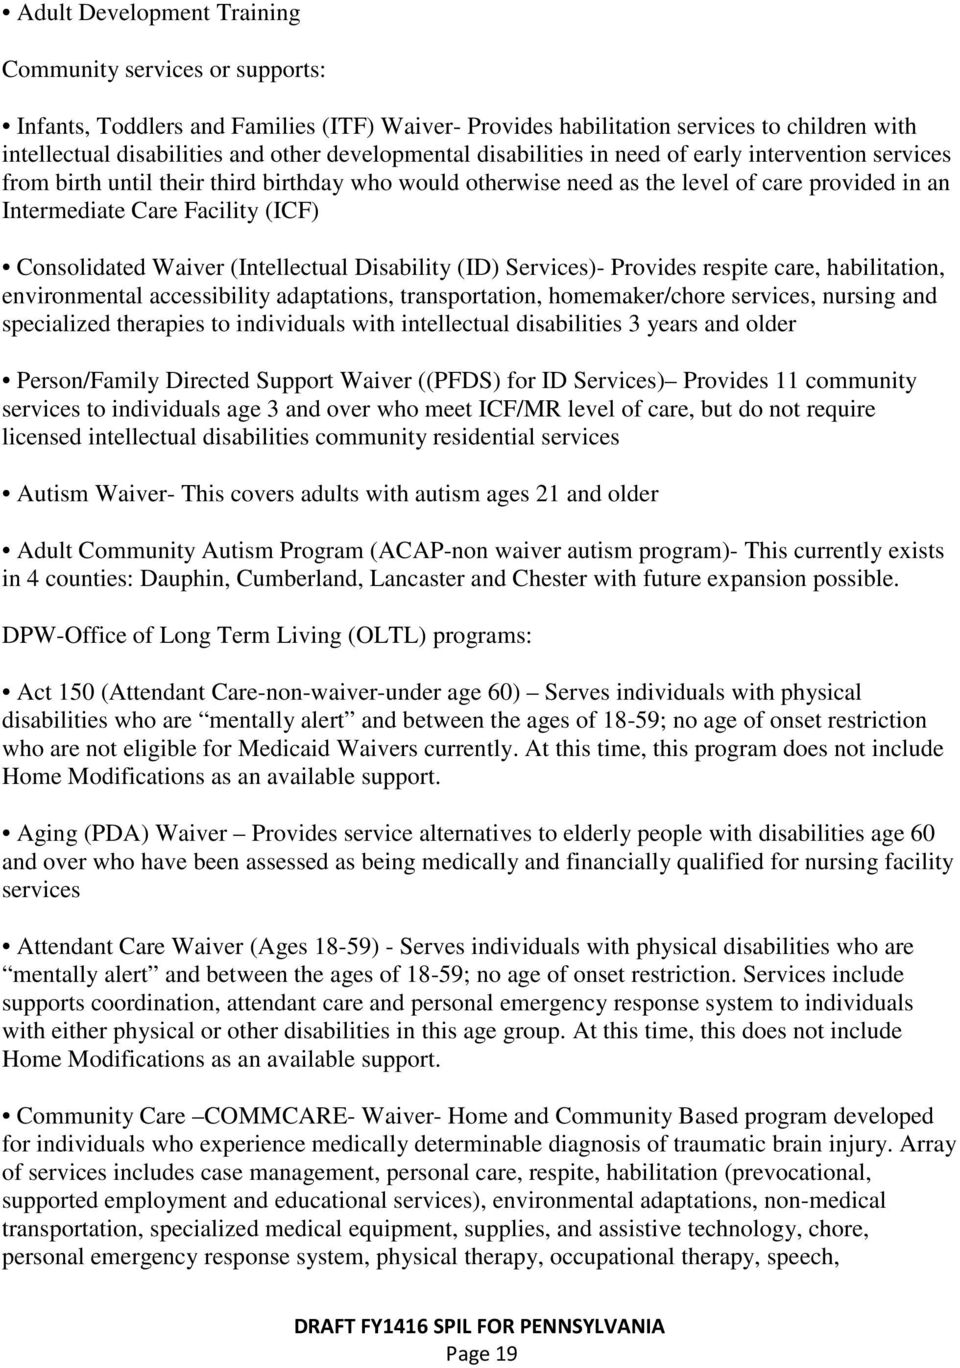 Consolidated Waiver (Intellectual Disability (ID) Services)- Provides respite care, habilitation, environmental accessibility adaptations, transportation, homemaker/chore services, nursing and